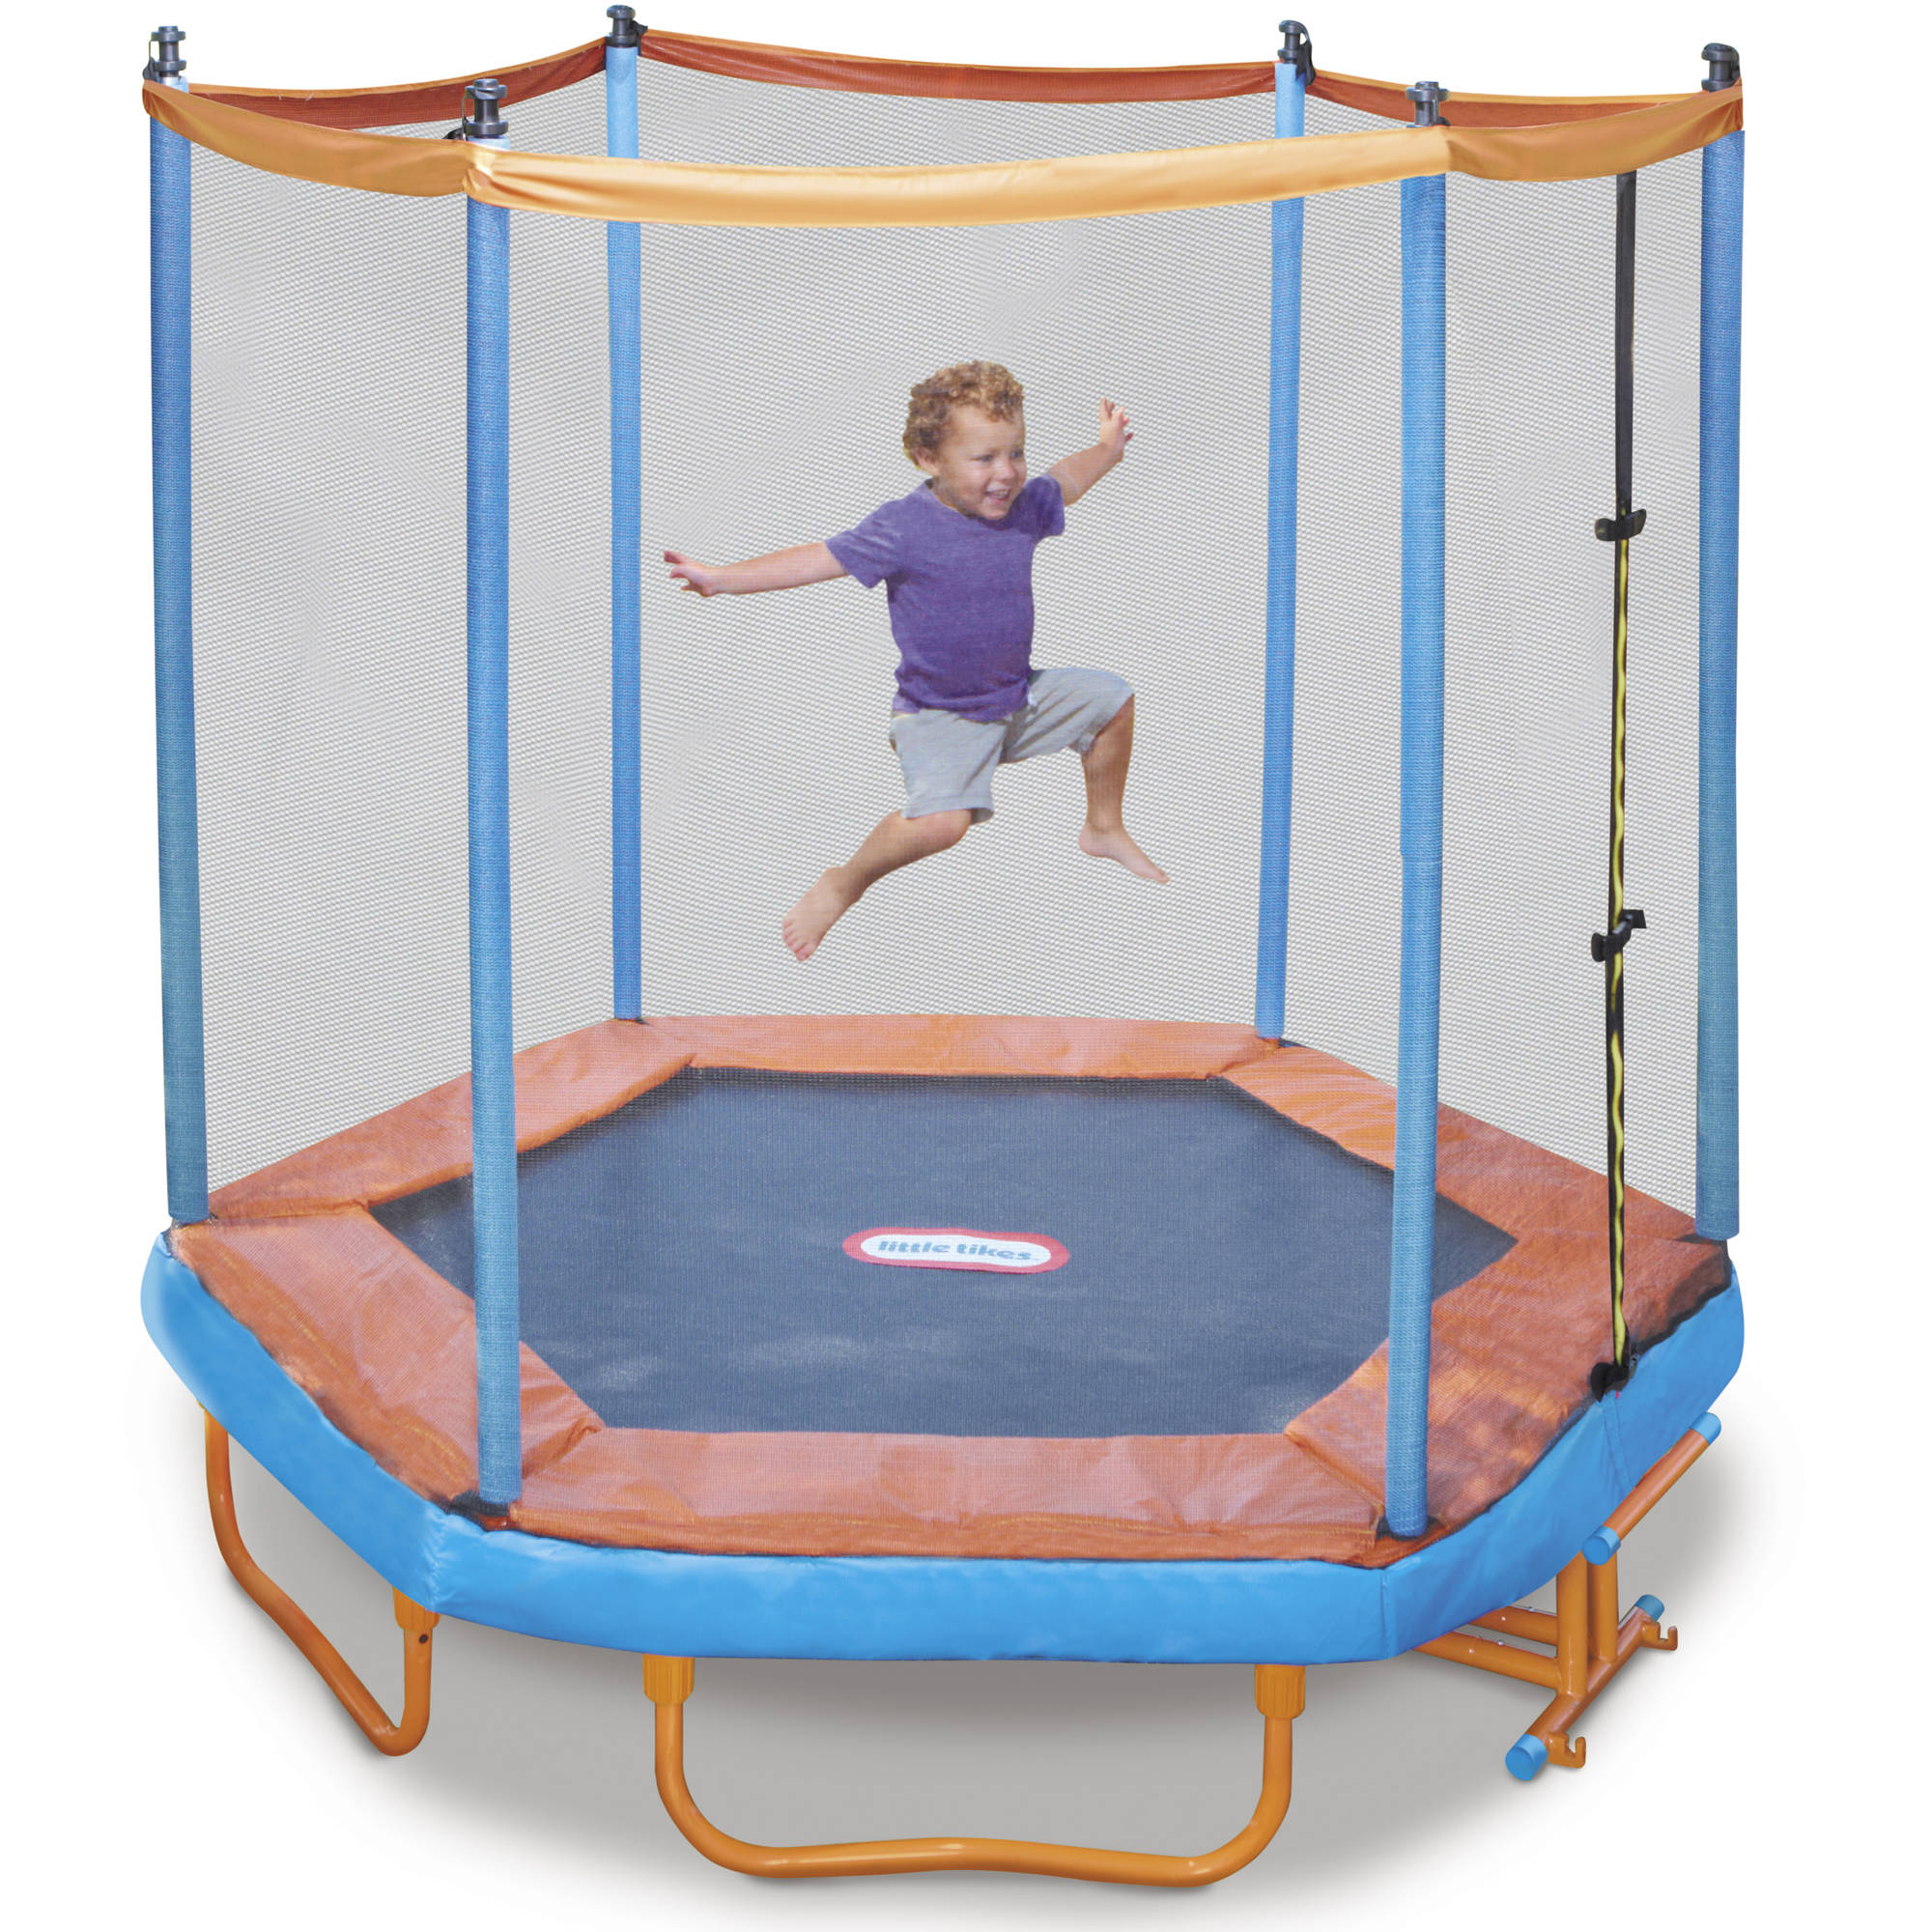 Little Tikes Easy Store 7-Foot Folding Trampoline, with Safety Enclosure and Padded Frame, Blue/Red